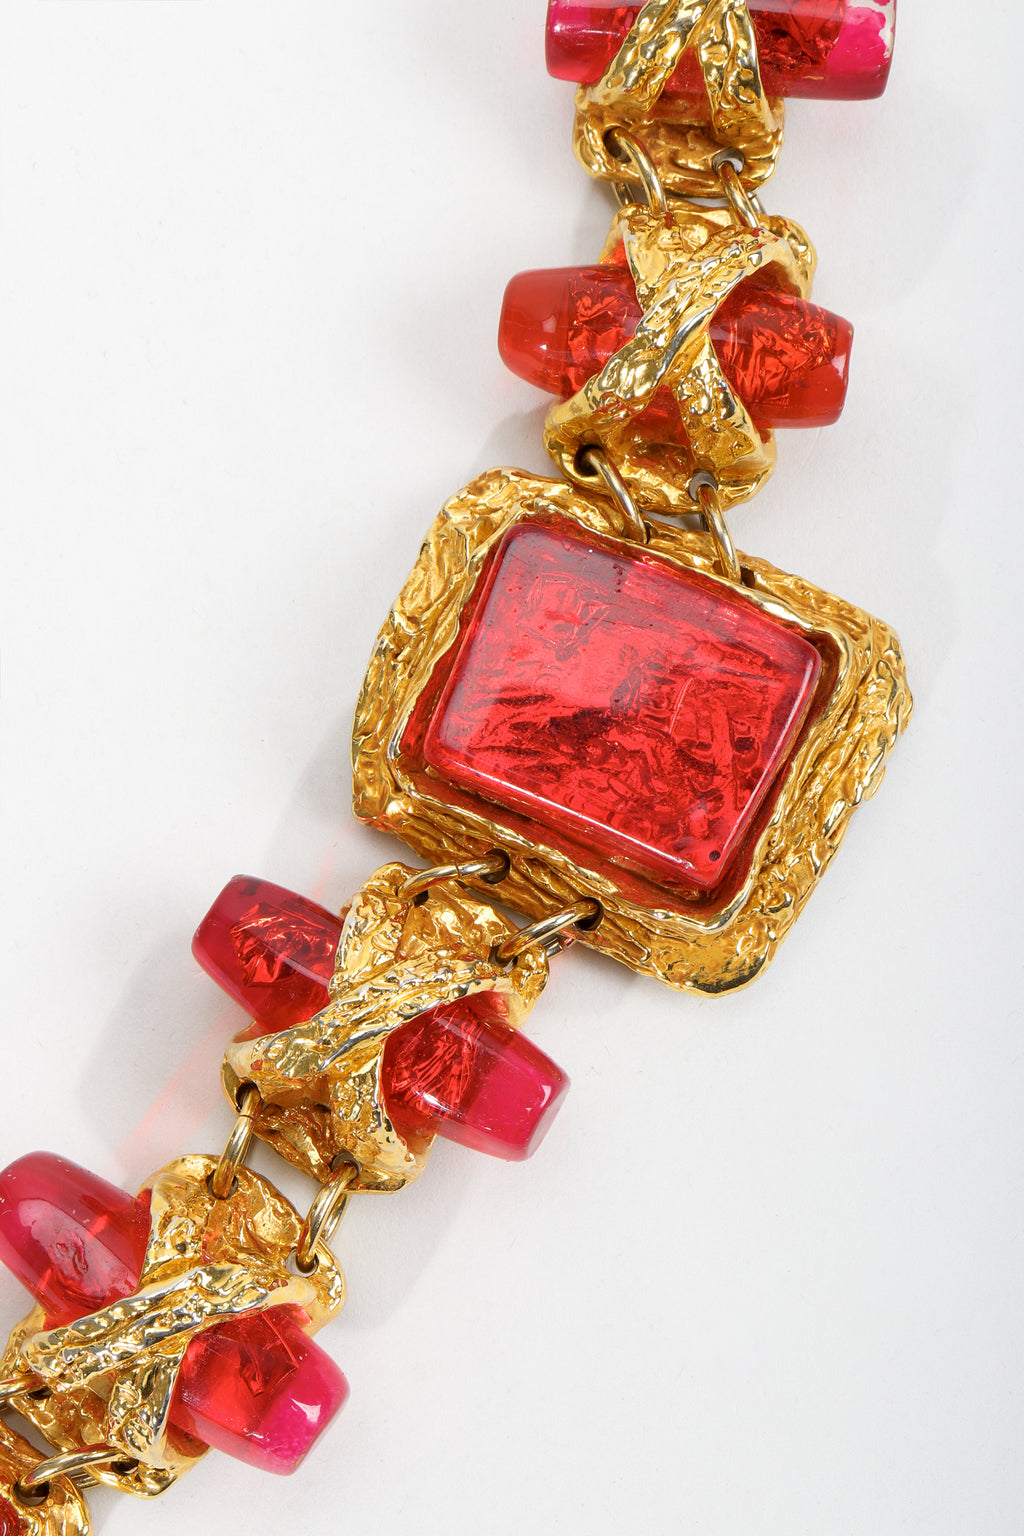 Vintage Christian Lacroix Brutalist Candy Apple Bracelet at Recess Los Angeles